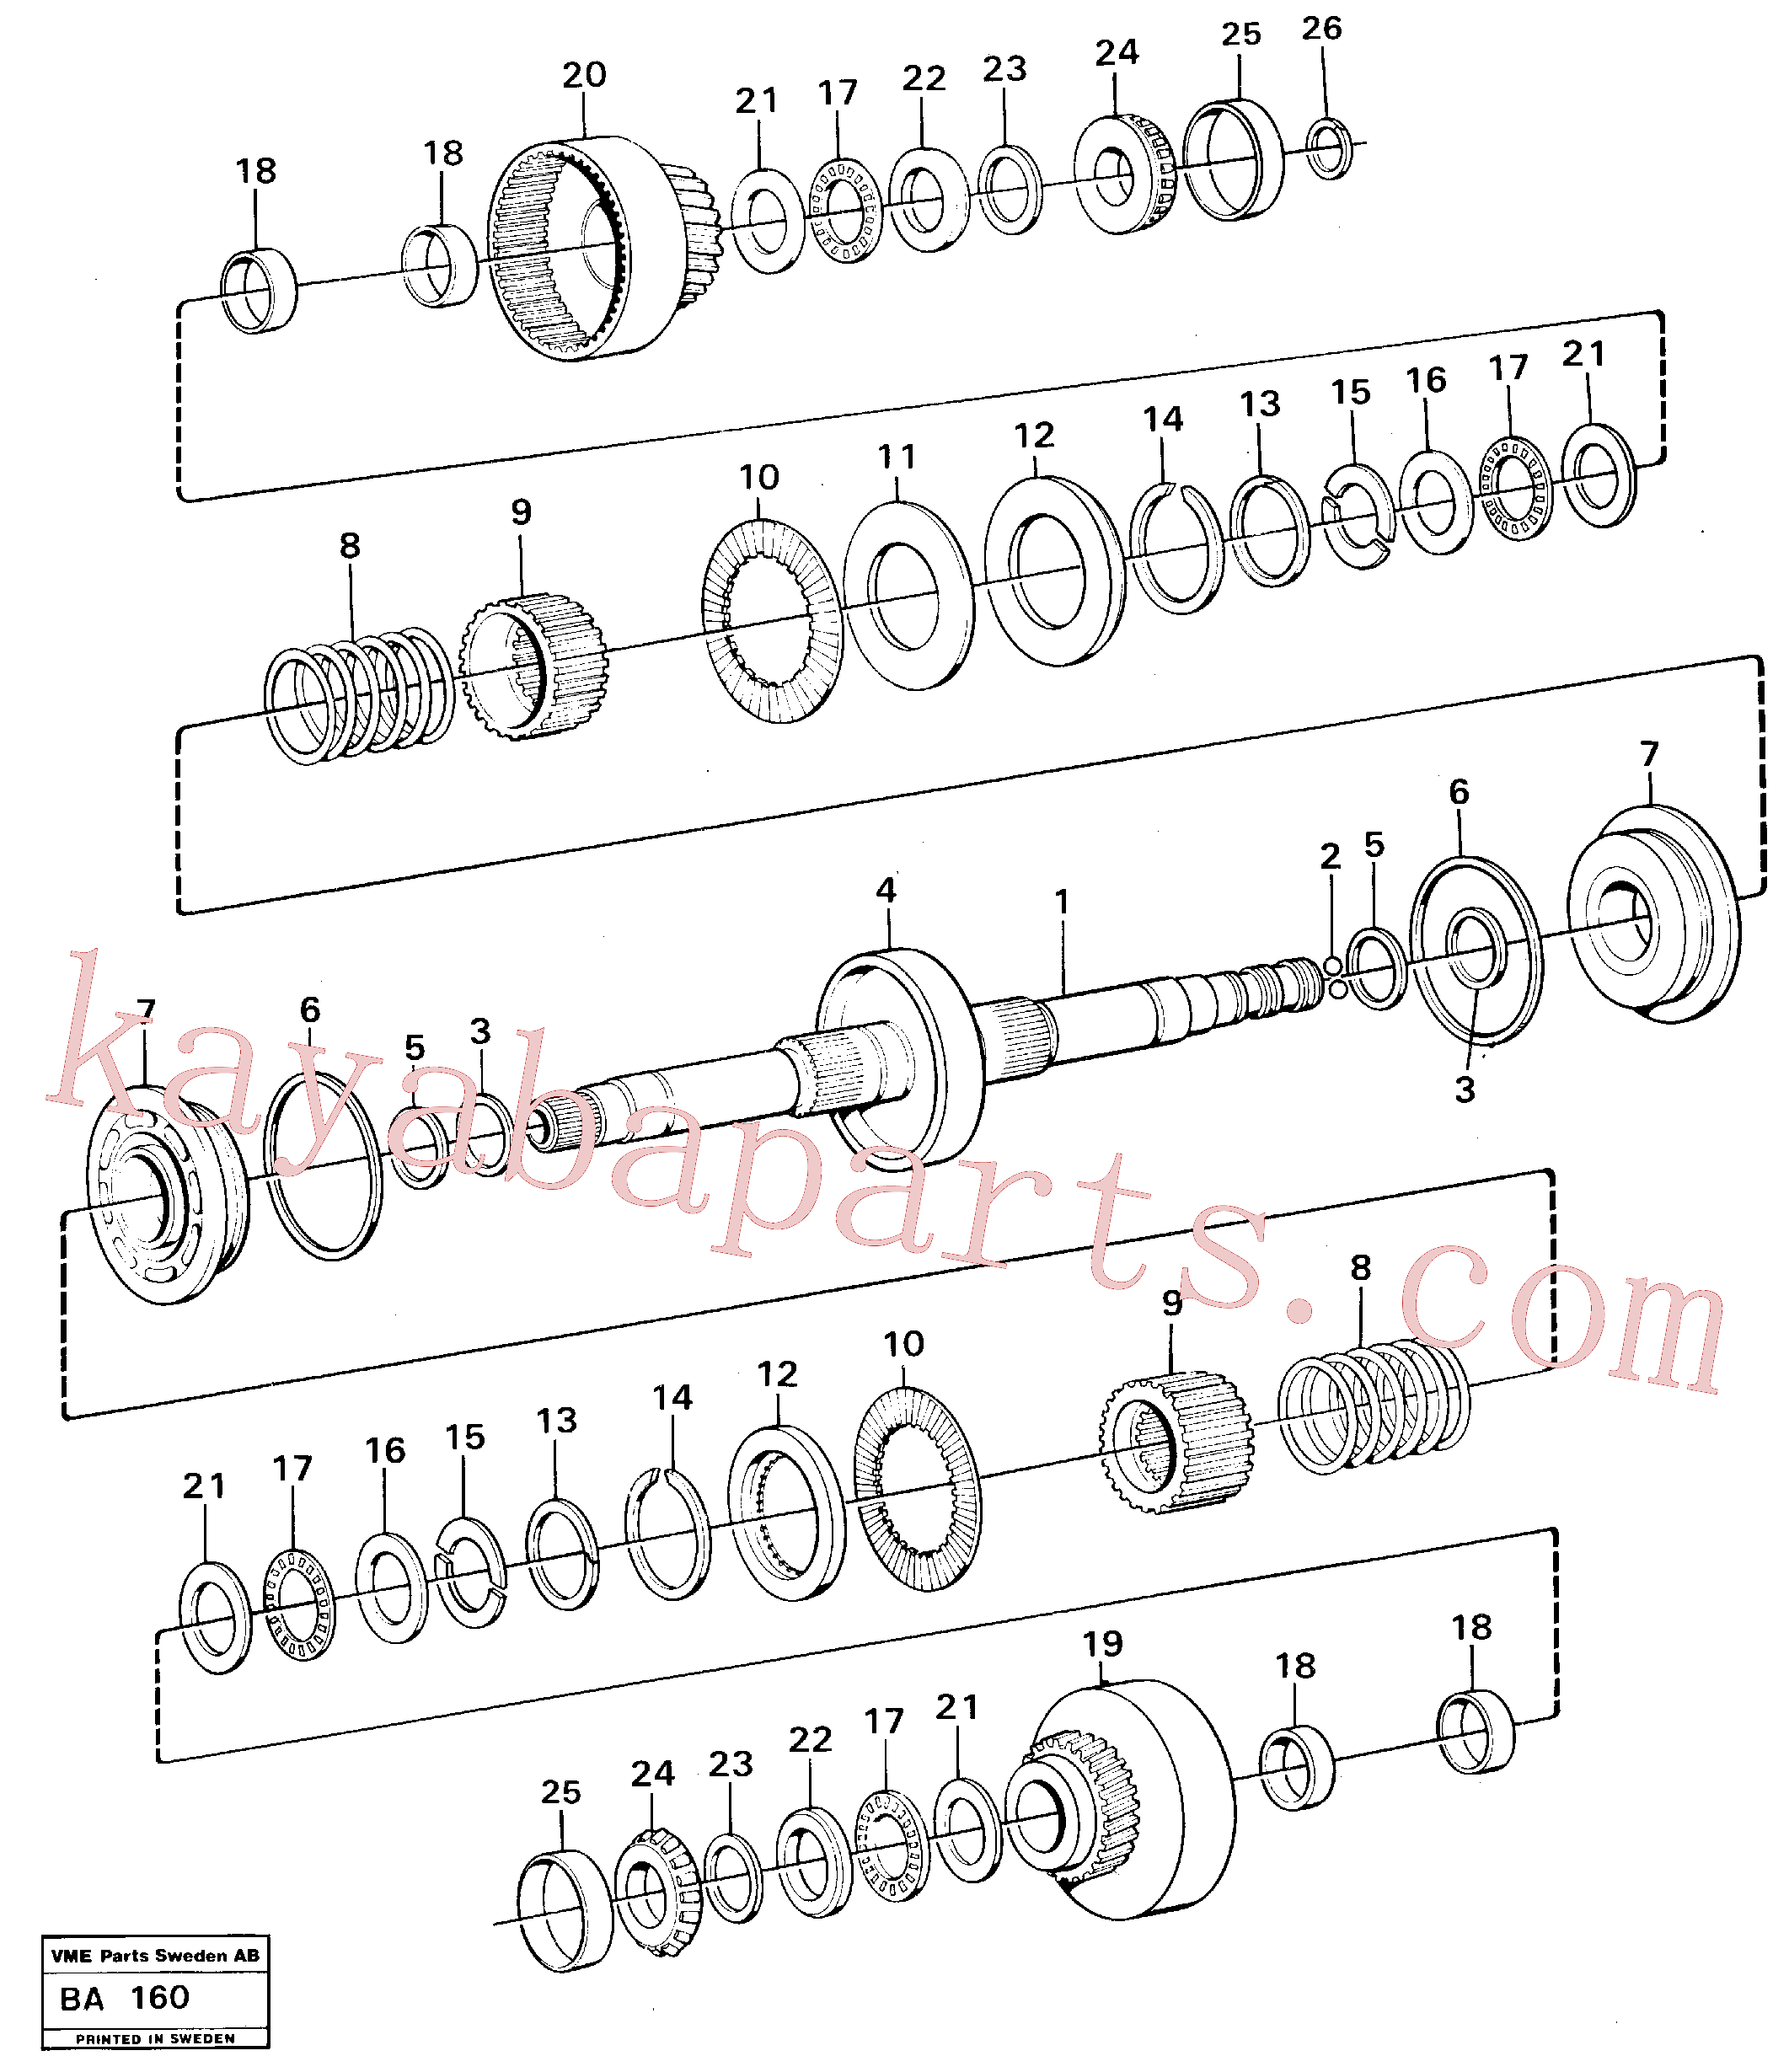 VOE184645 for Volvo Clutches forward and reverse(BA160 assembly)